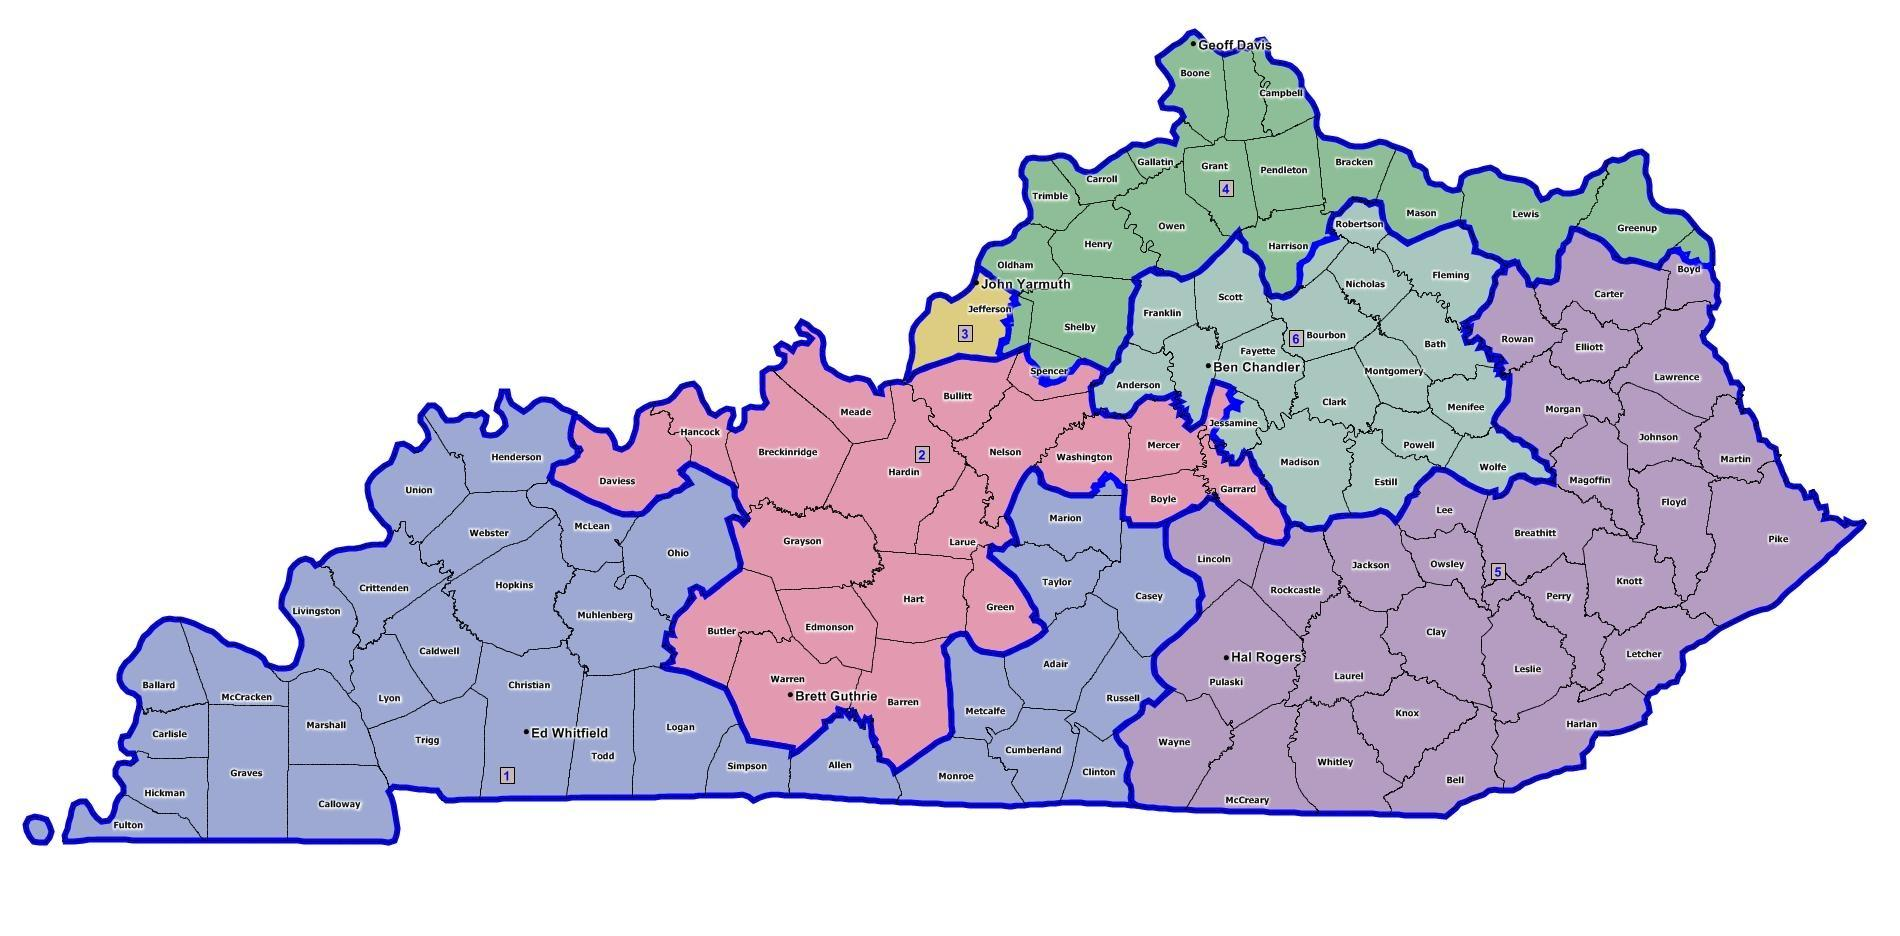 New Kentucky Congressional Districts WKMS - Map us house of representatives